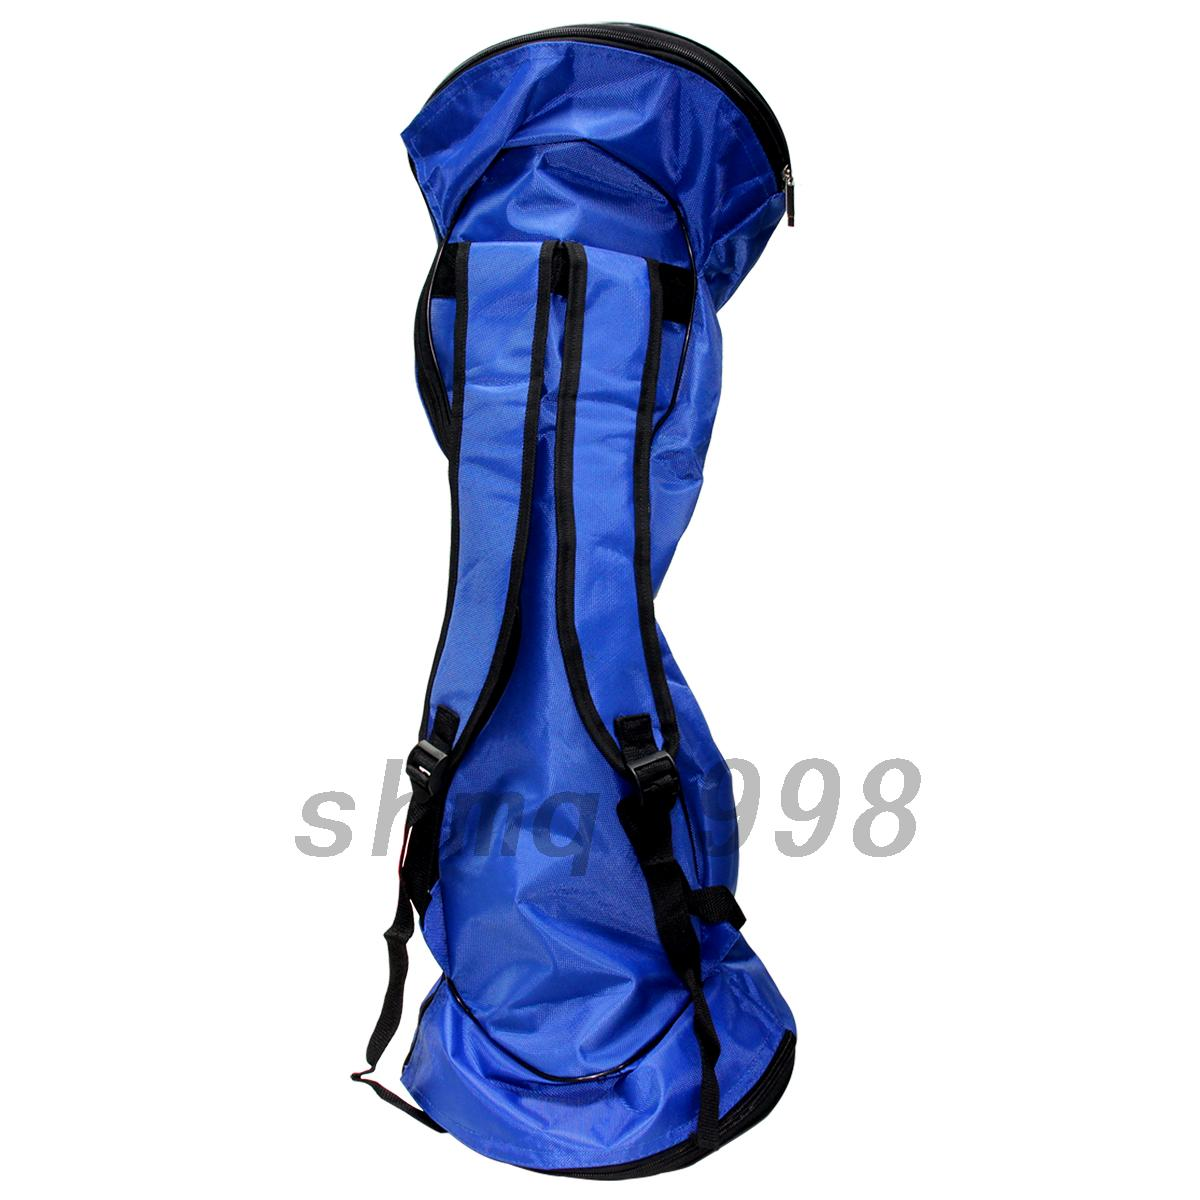 Portable sac de transport pour hoverboard carrying bag for Housse pour hoverboard